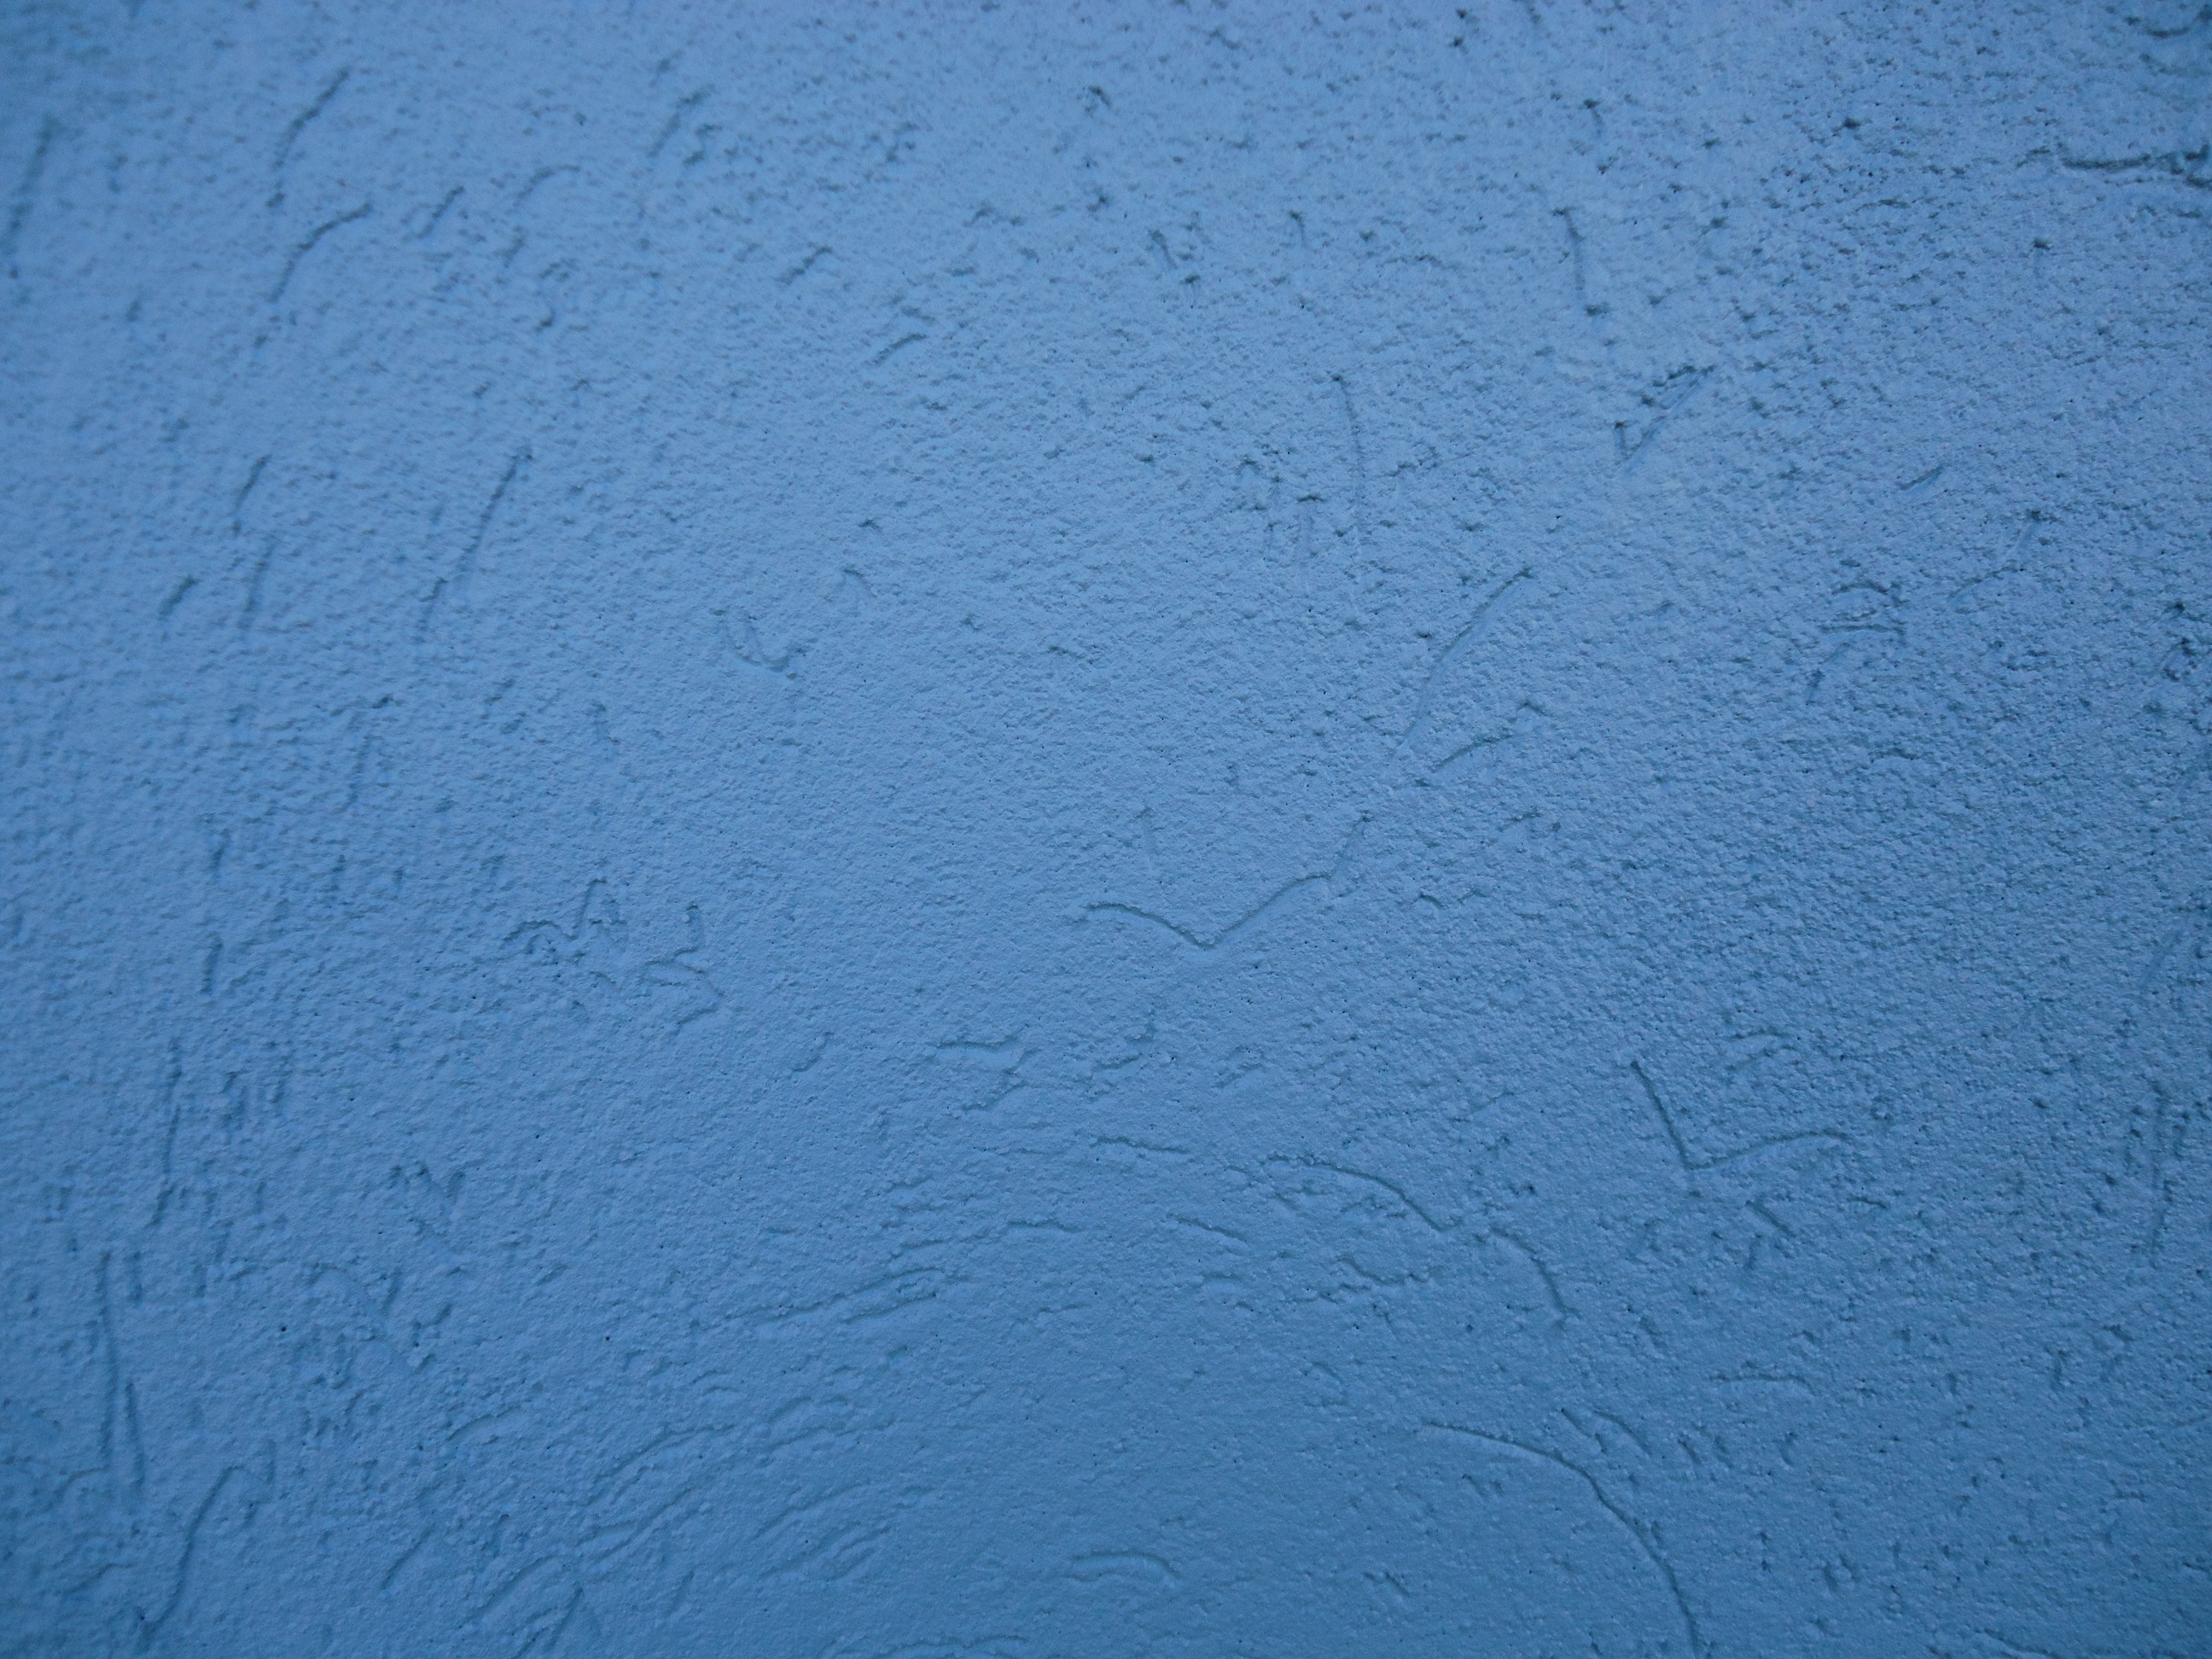 File:Surfaces wall textured painted blue.JPG